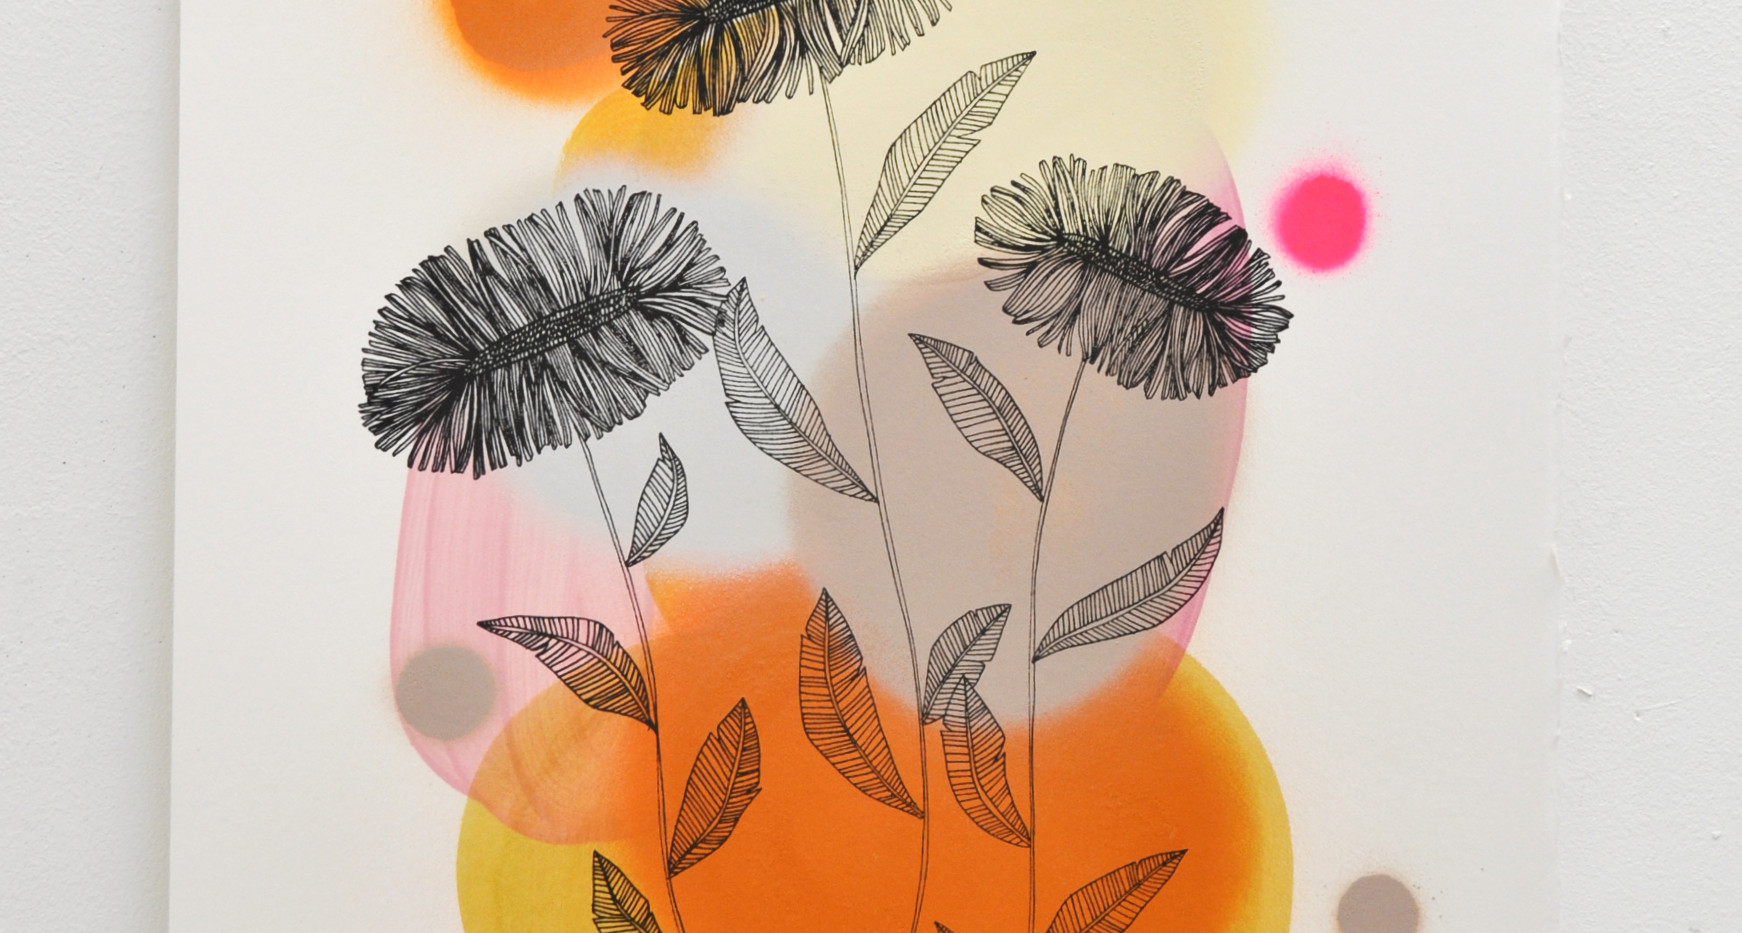 Daisies edition no. 4 of 30, silk screen print on hand painted background, 50 x 35cm